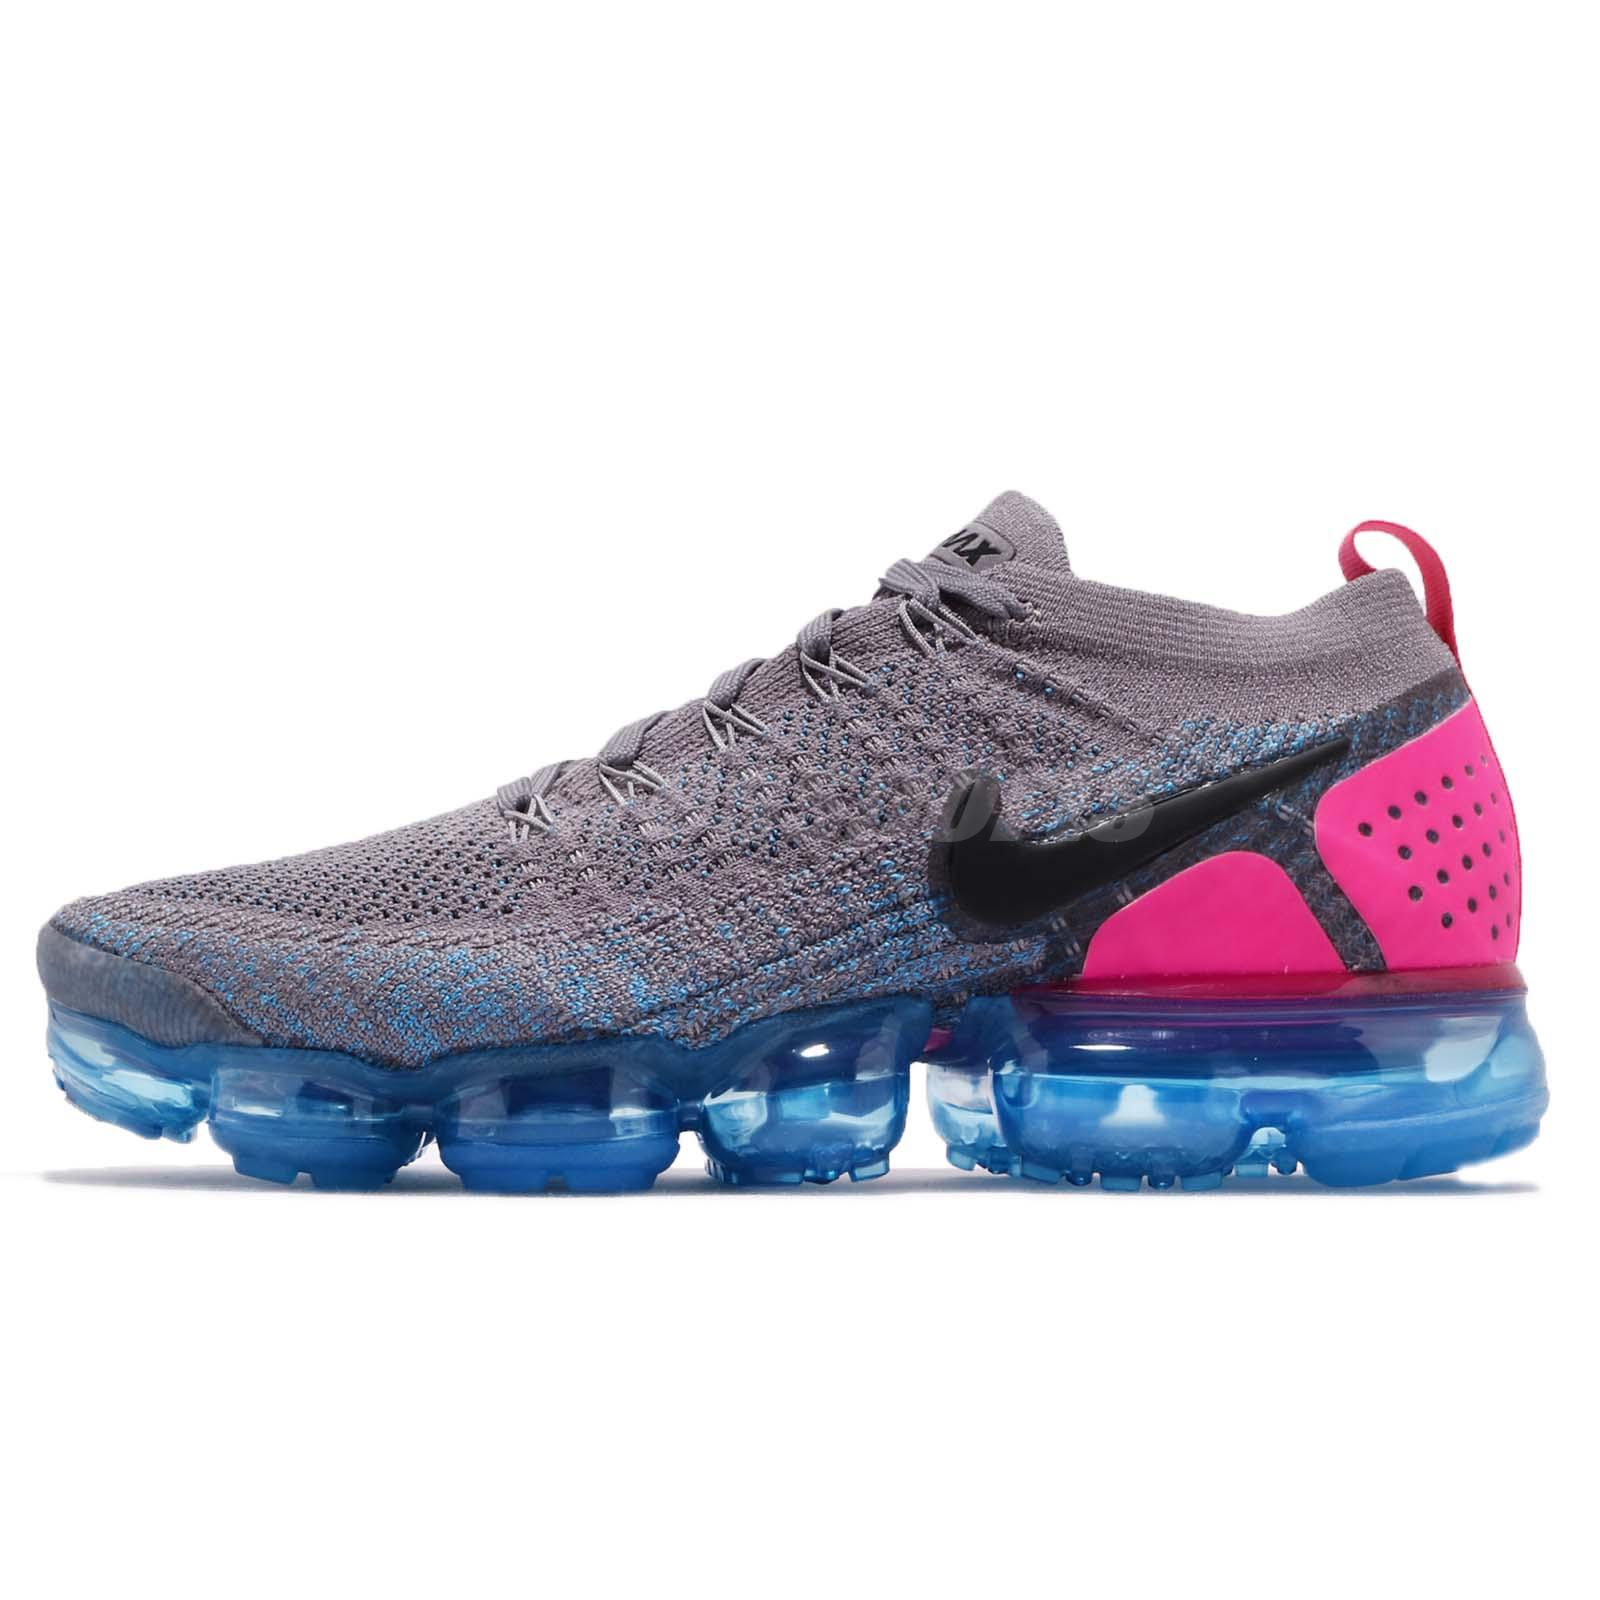 d16eb13a313b Nike Air Vapormax Flyknit 2 II Gunsmoke Pink Blue Men Running Shoes 942842- 004